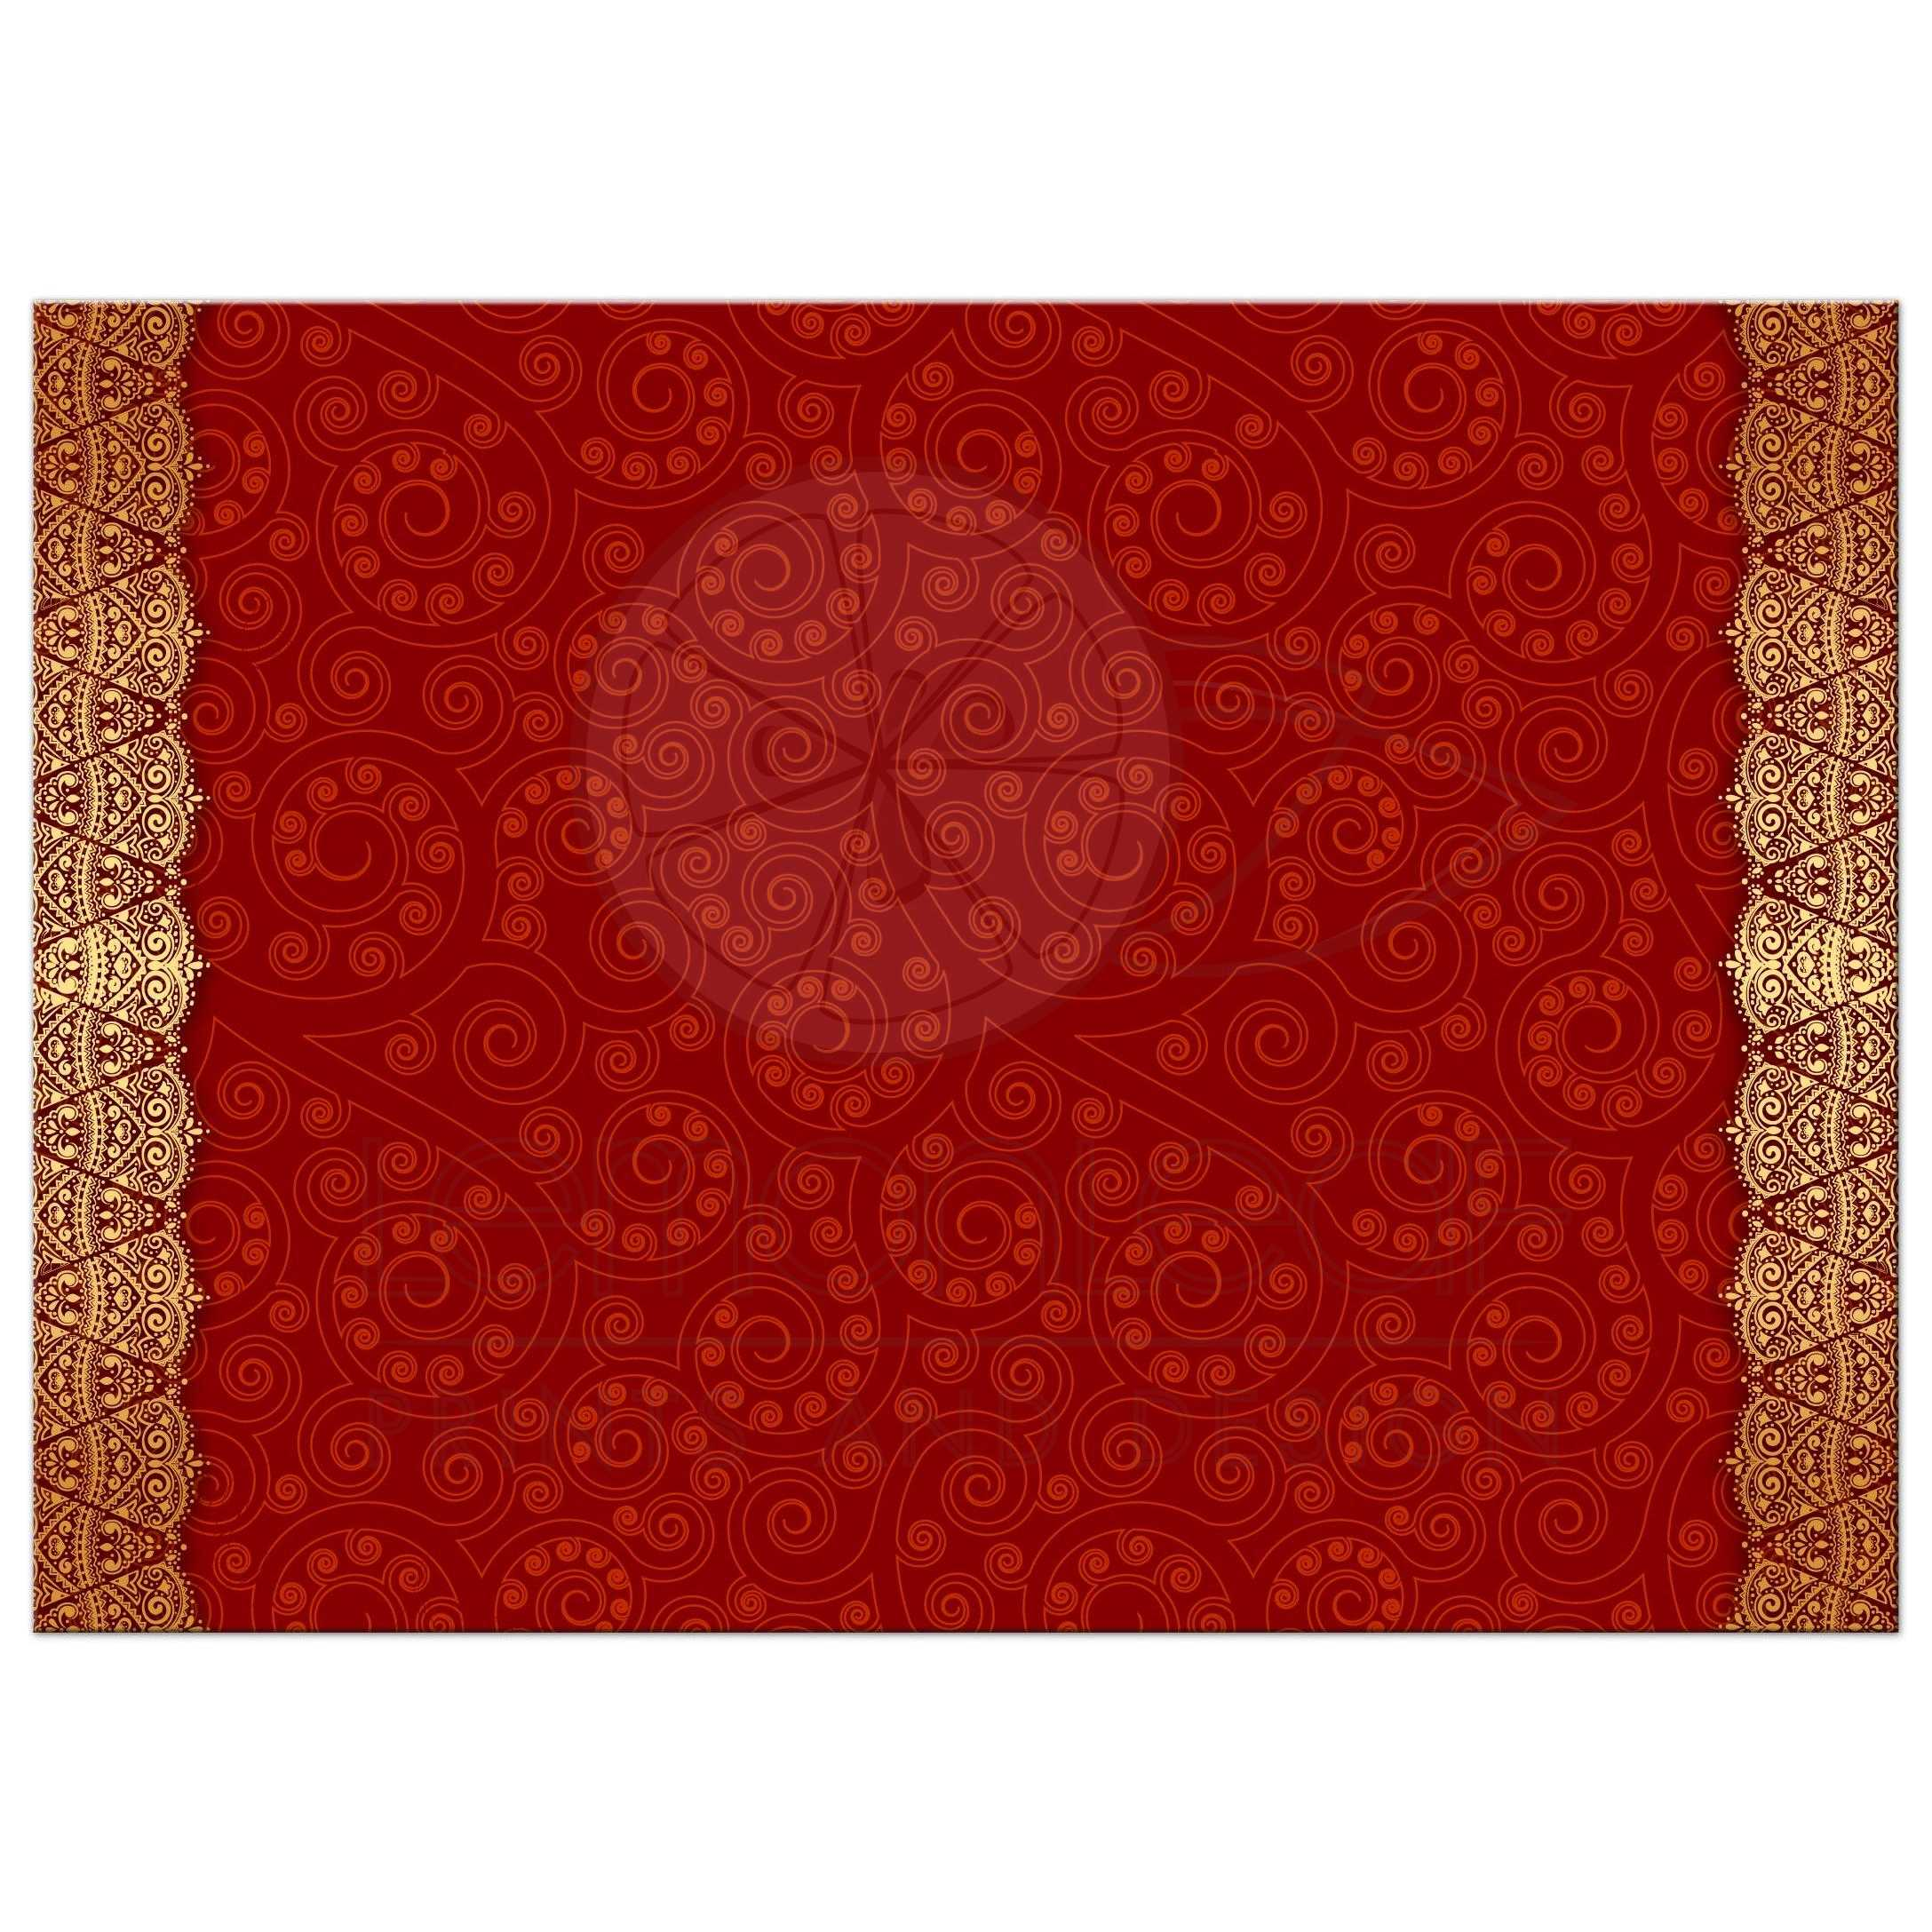 Wedding invitation - Crimson Indian Paisley Golden Gilded Edge